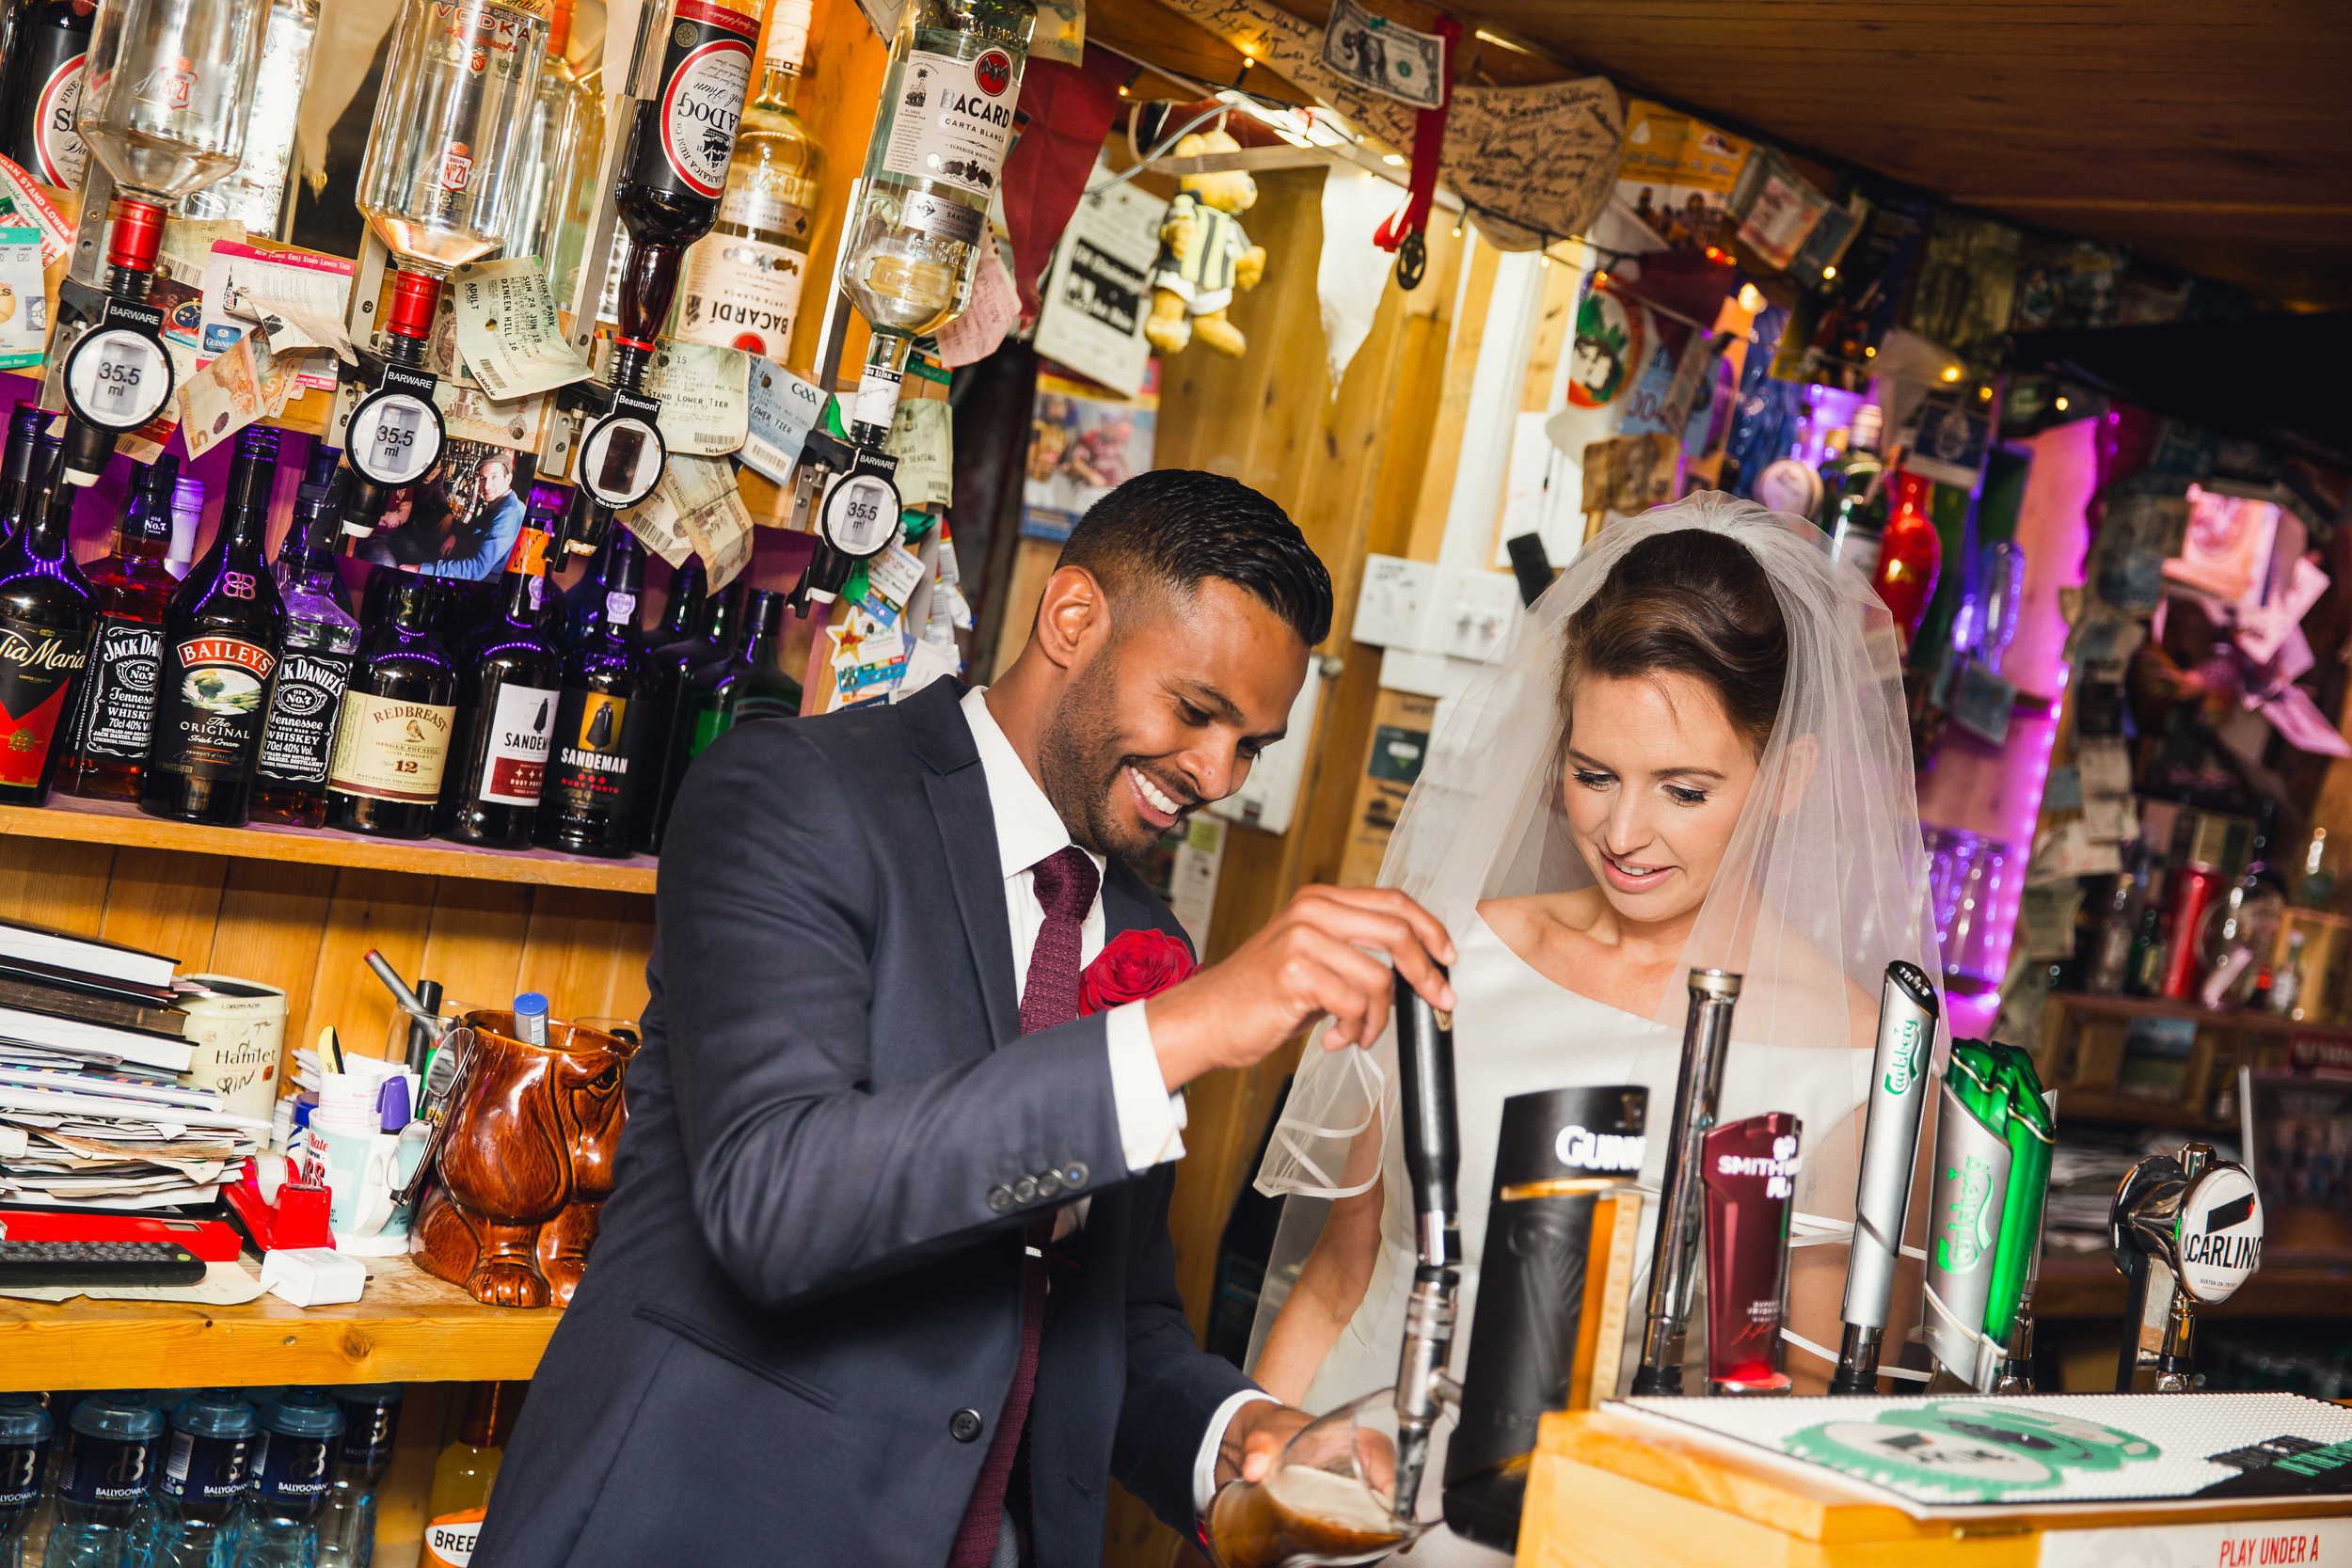 Radestown House Boutique Wedding Venue Co Kilkenny. The wedding of Suzi & Shai By Stargaze Photography Kilkenny. The wedding reception was held in Anocht Restaurant in the Kilkenny Design Centre. Bride & Groom pull a pint of Guinness in the bar.